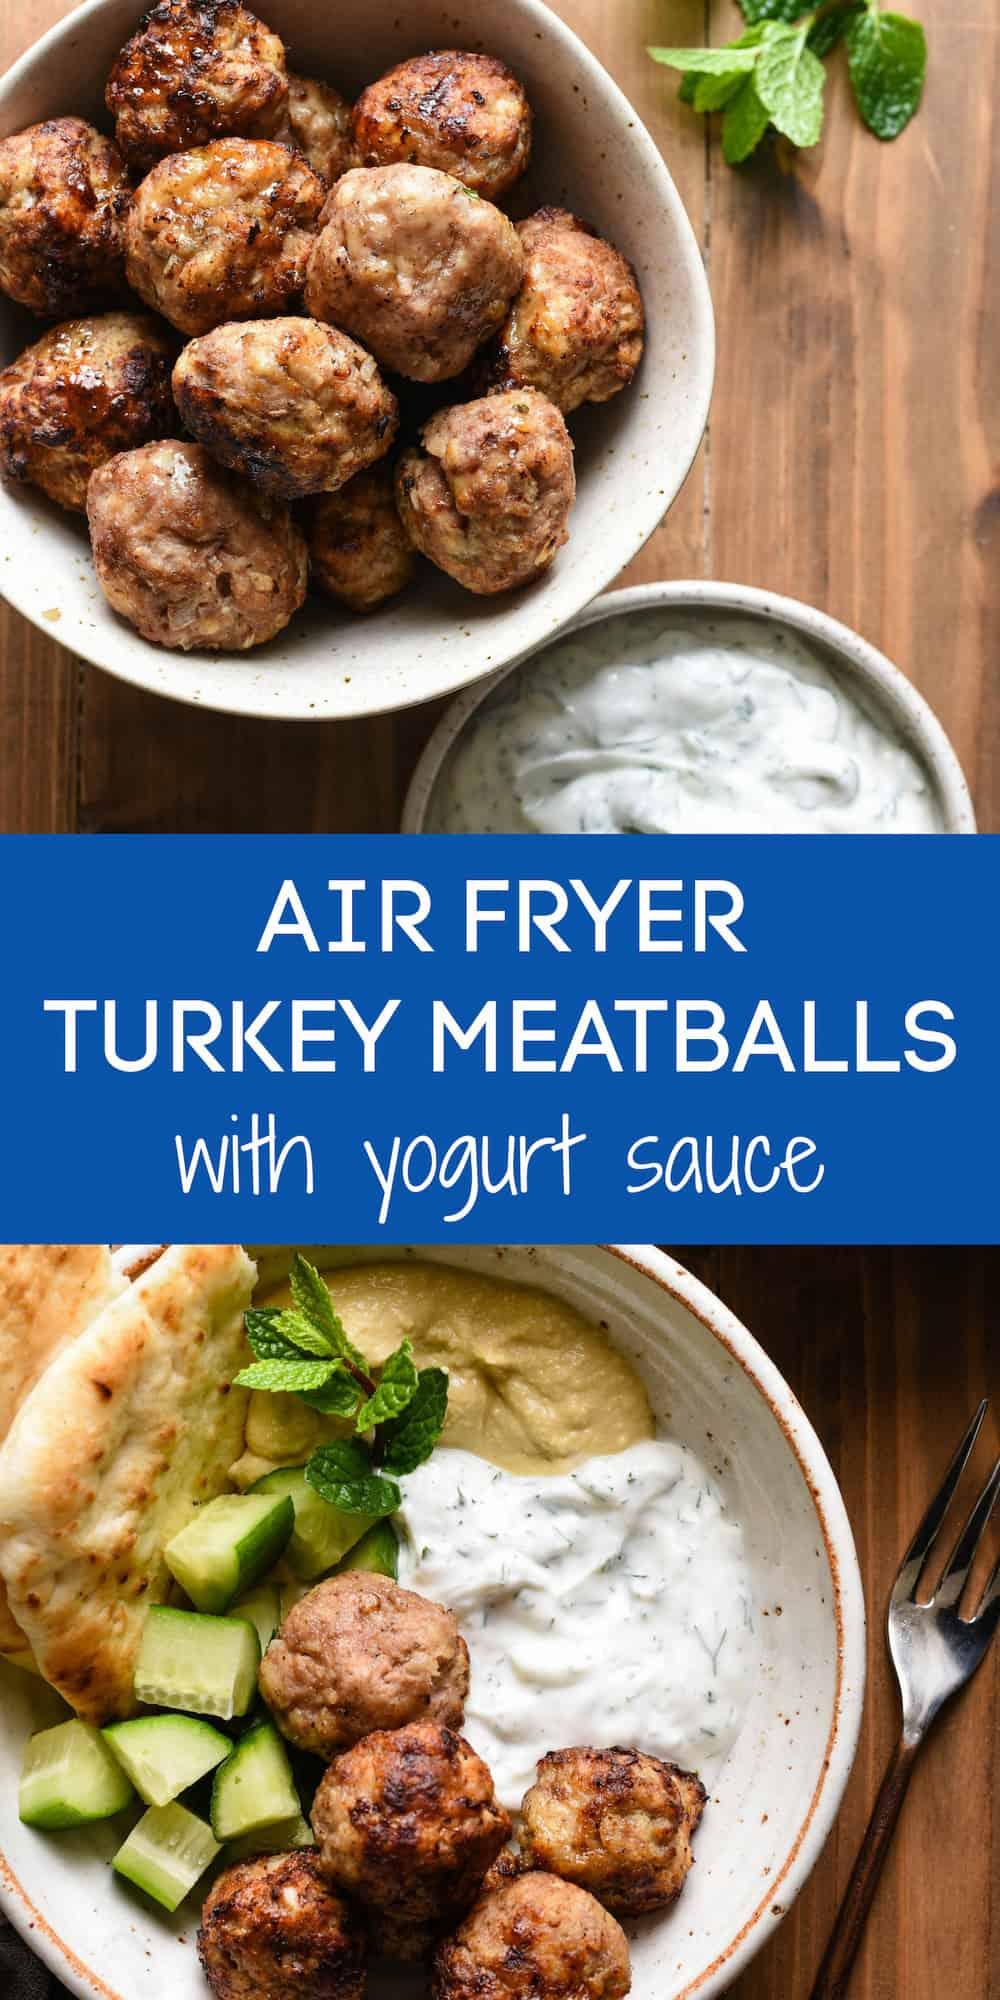 Collage of images of turkey meatballs and meatball bowl with overlay: AIR FRYER TURKEY MEATBALLS with yogurt sauce.